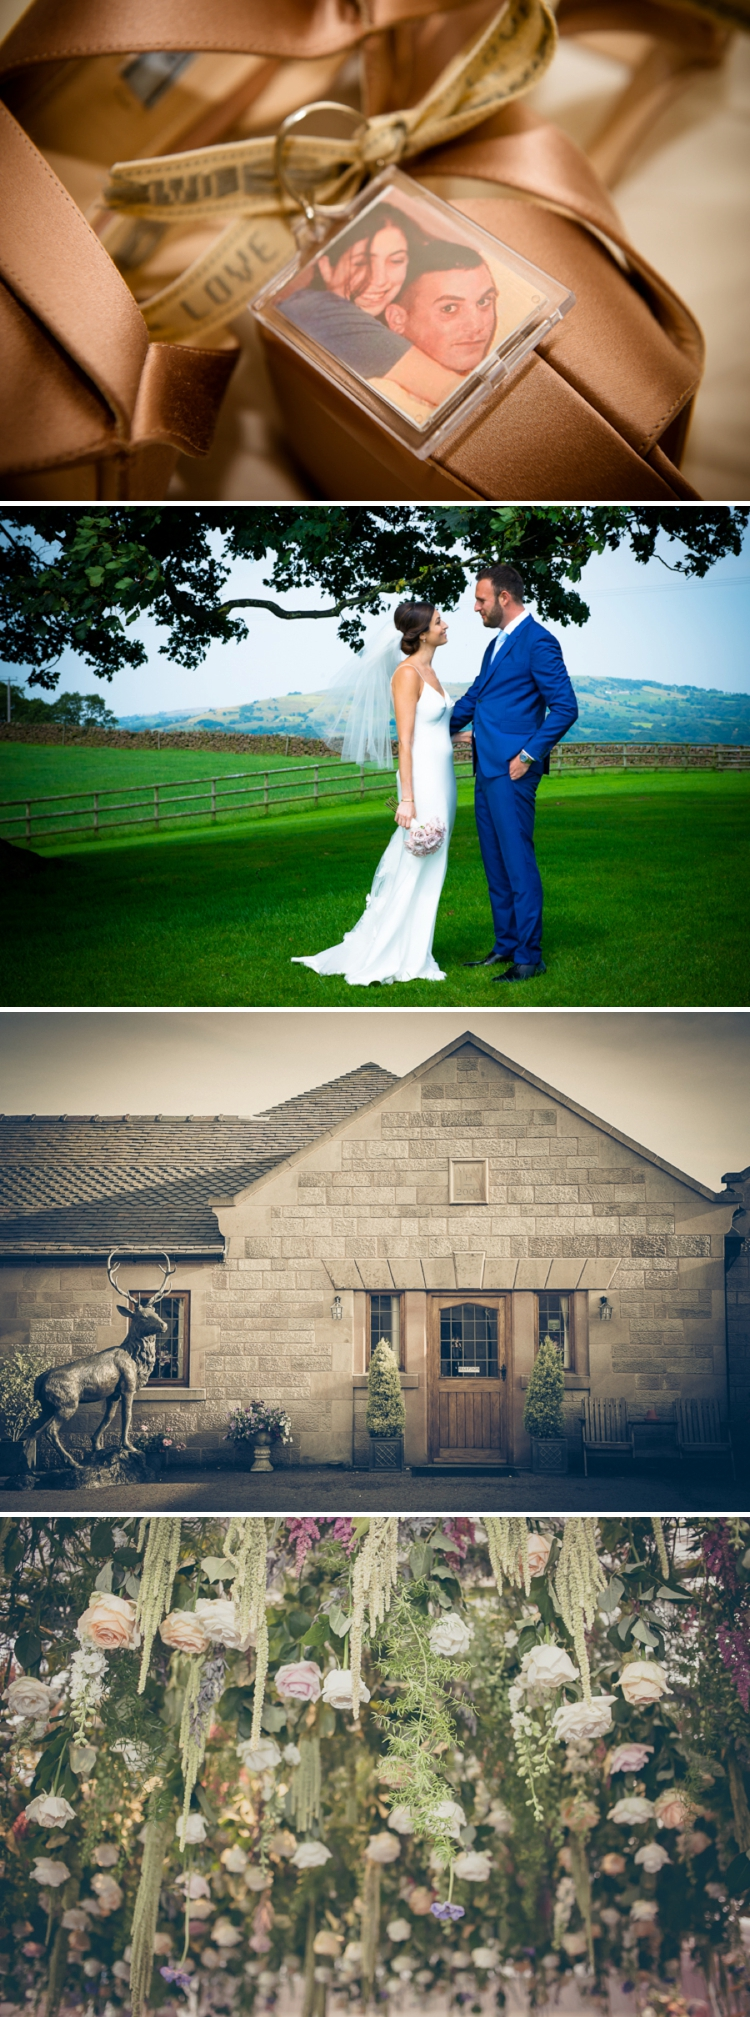 Rustic Chic Jewish Wedding Heaton House Farm_0678